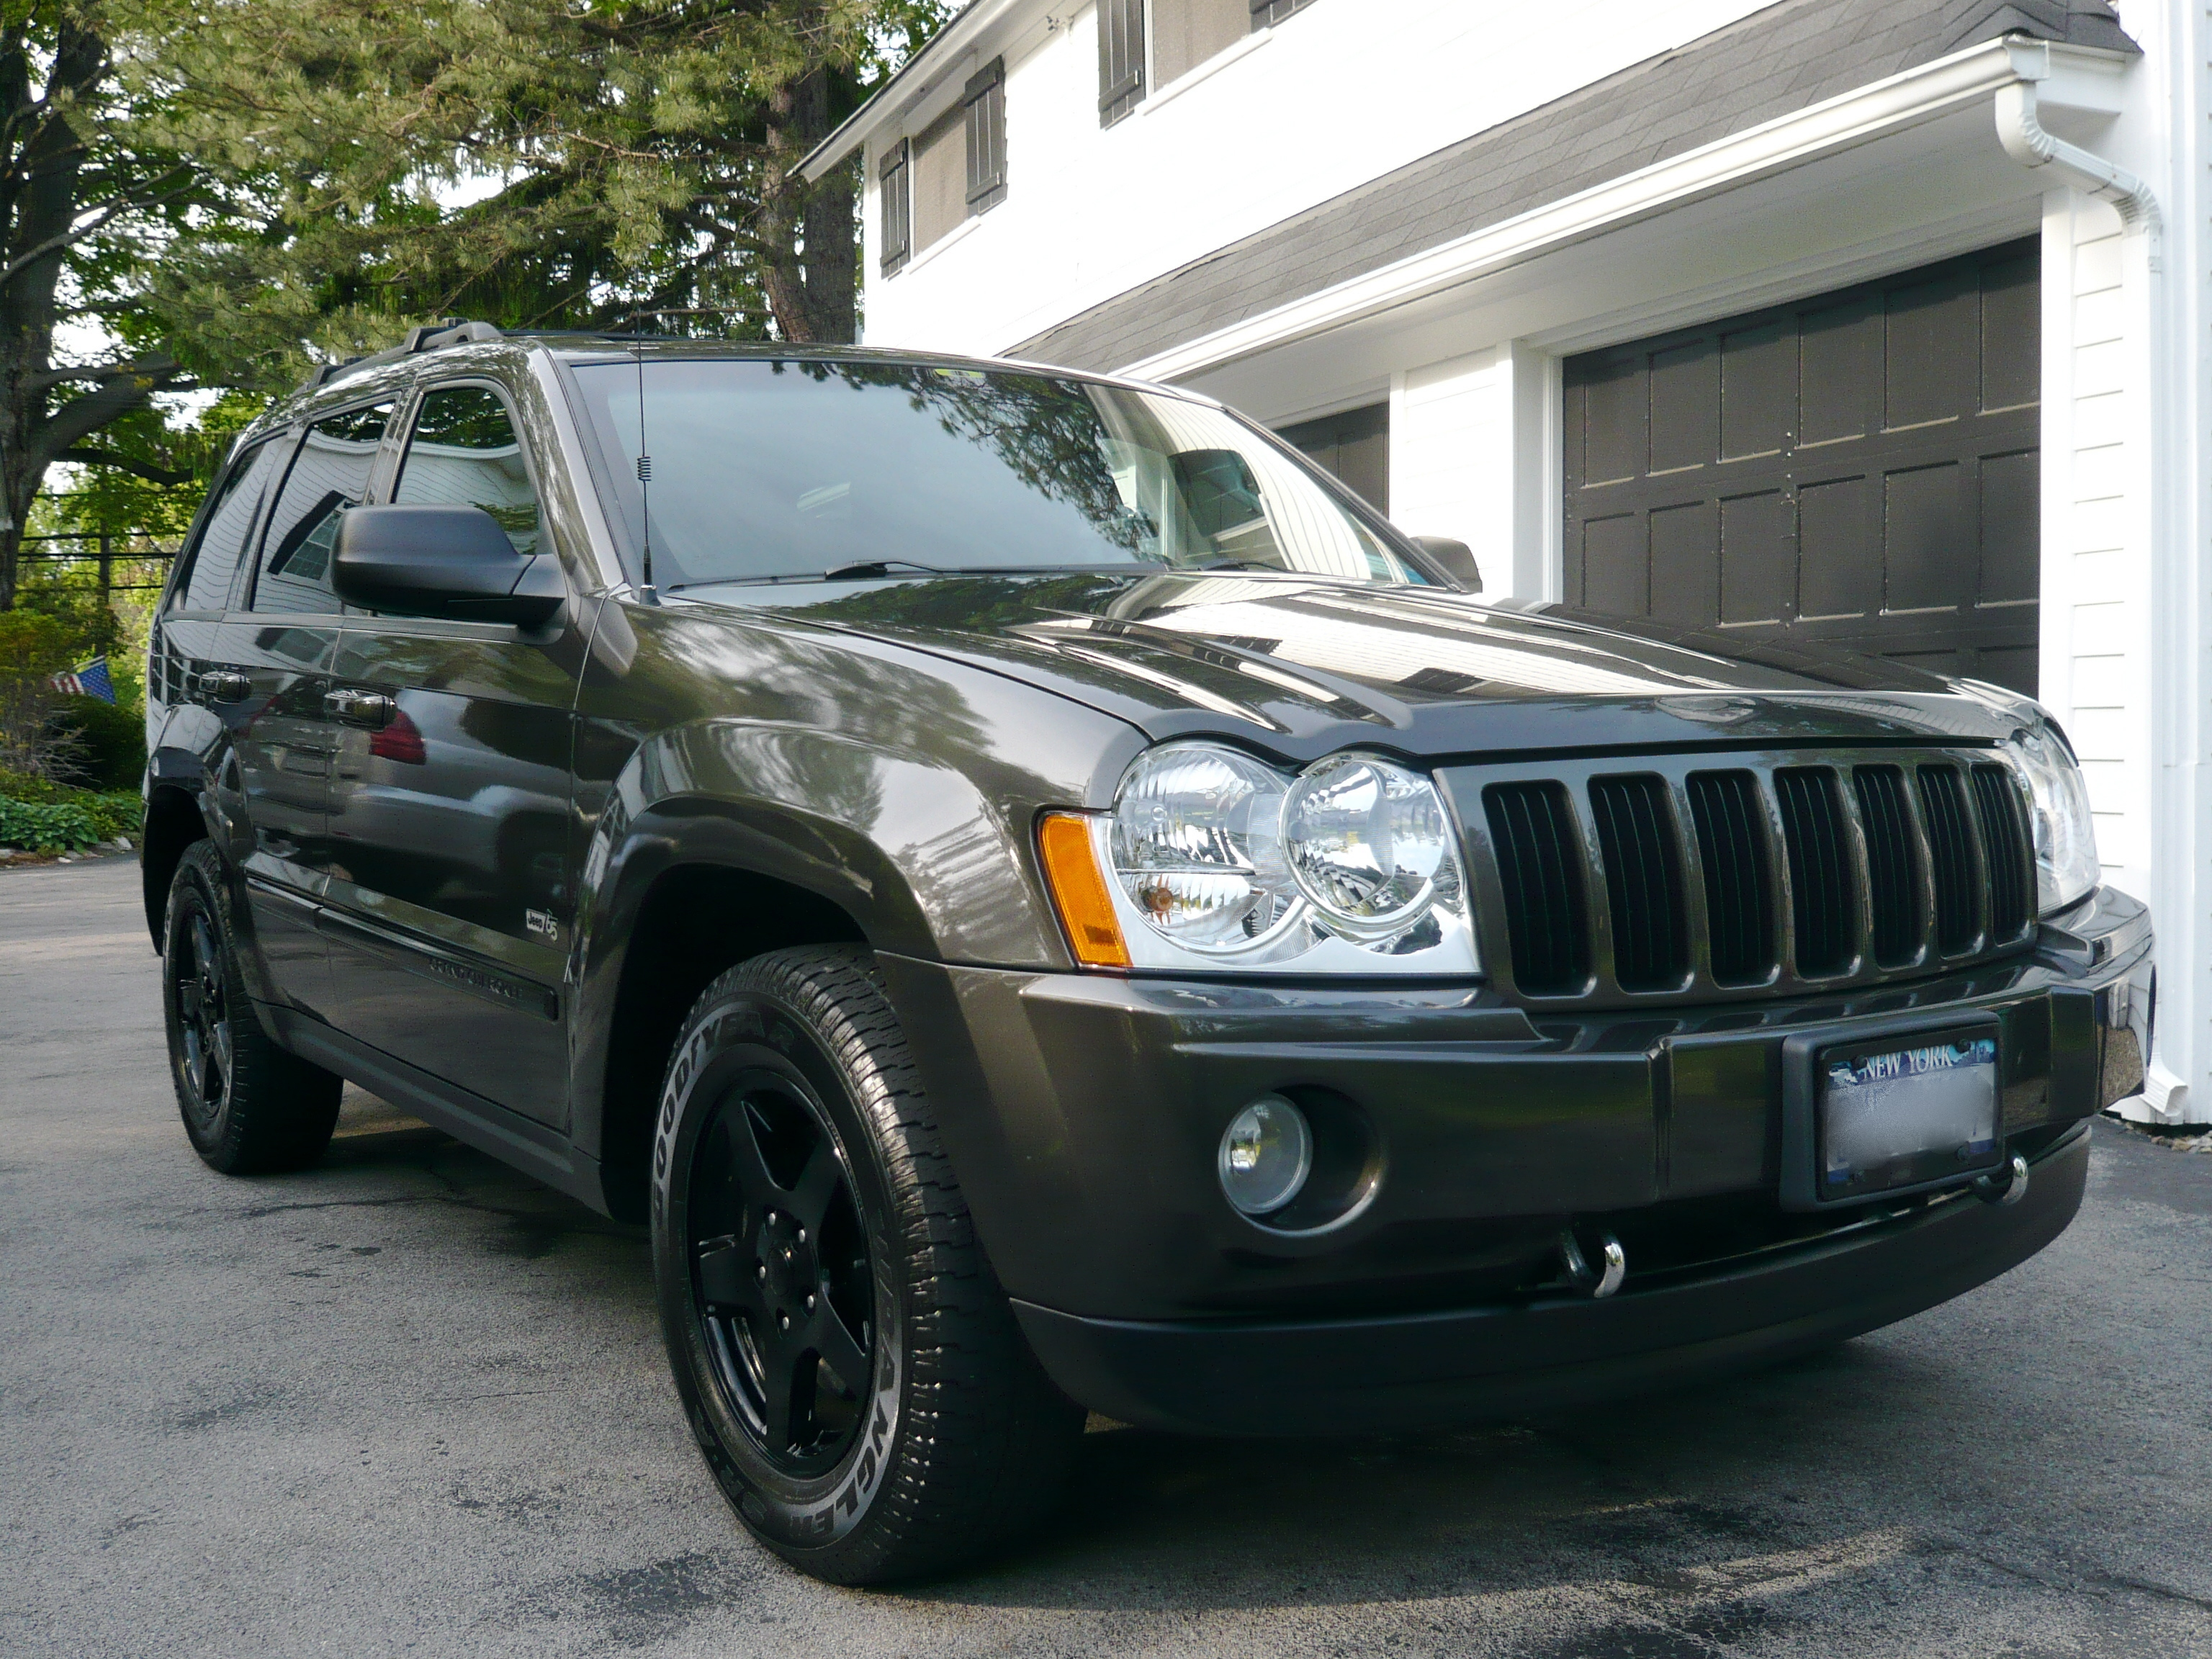 jeepsixtyfive 2006 jeep grand cherokee specs photos modification info at cardomain. Black Bedroom Furniture Sets. Home Design Ideas